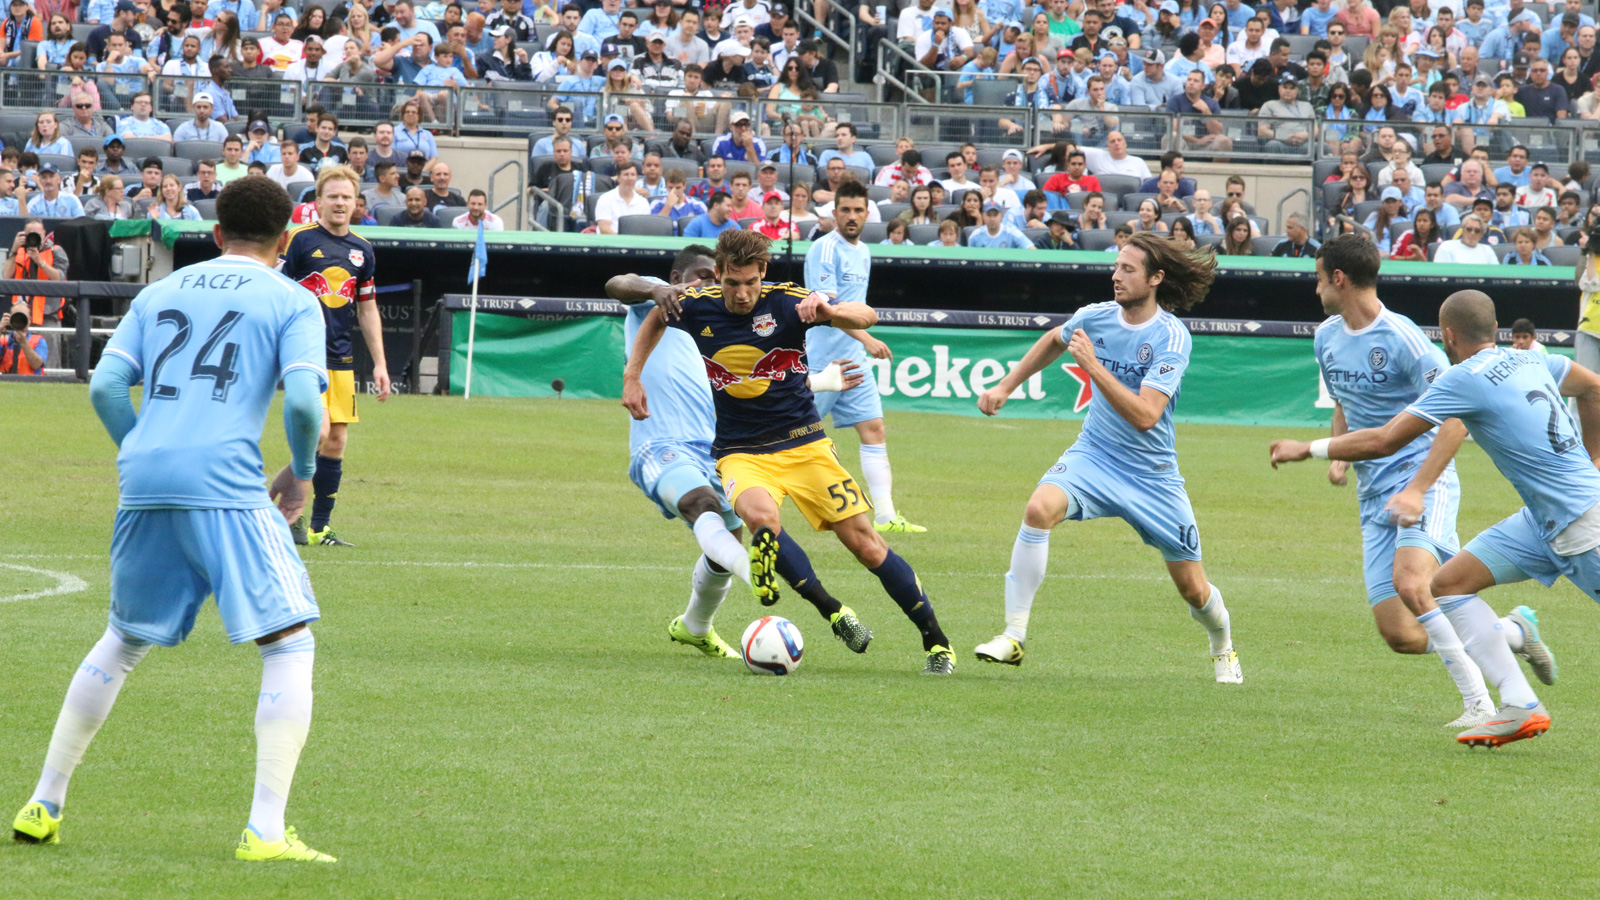 New York Red Bulls defender Damien Perrinelle (55) shakes off Kwadwo Poku (88) and Mix Diskerud (10) during the second half of the season's second Red Bulls-NYCFC clash.